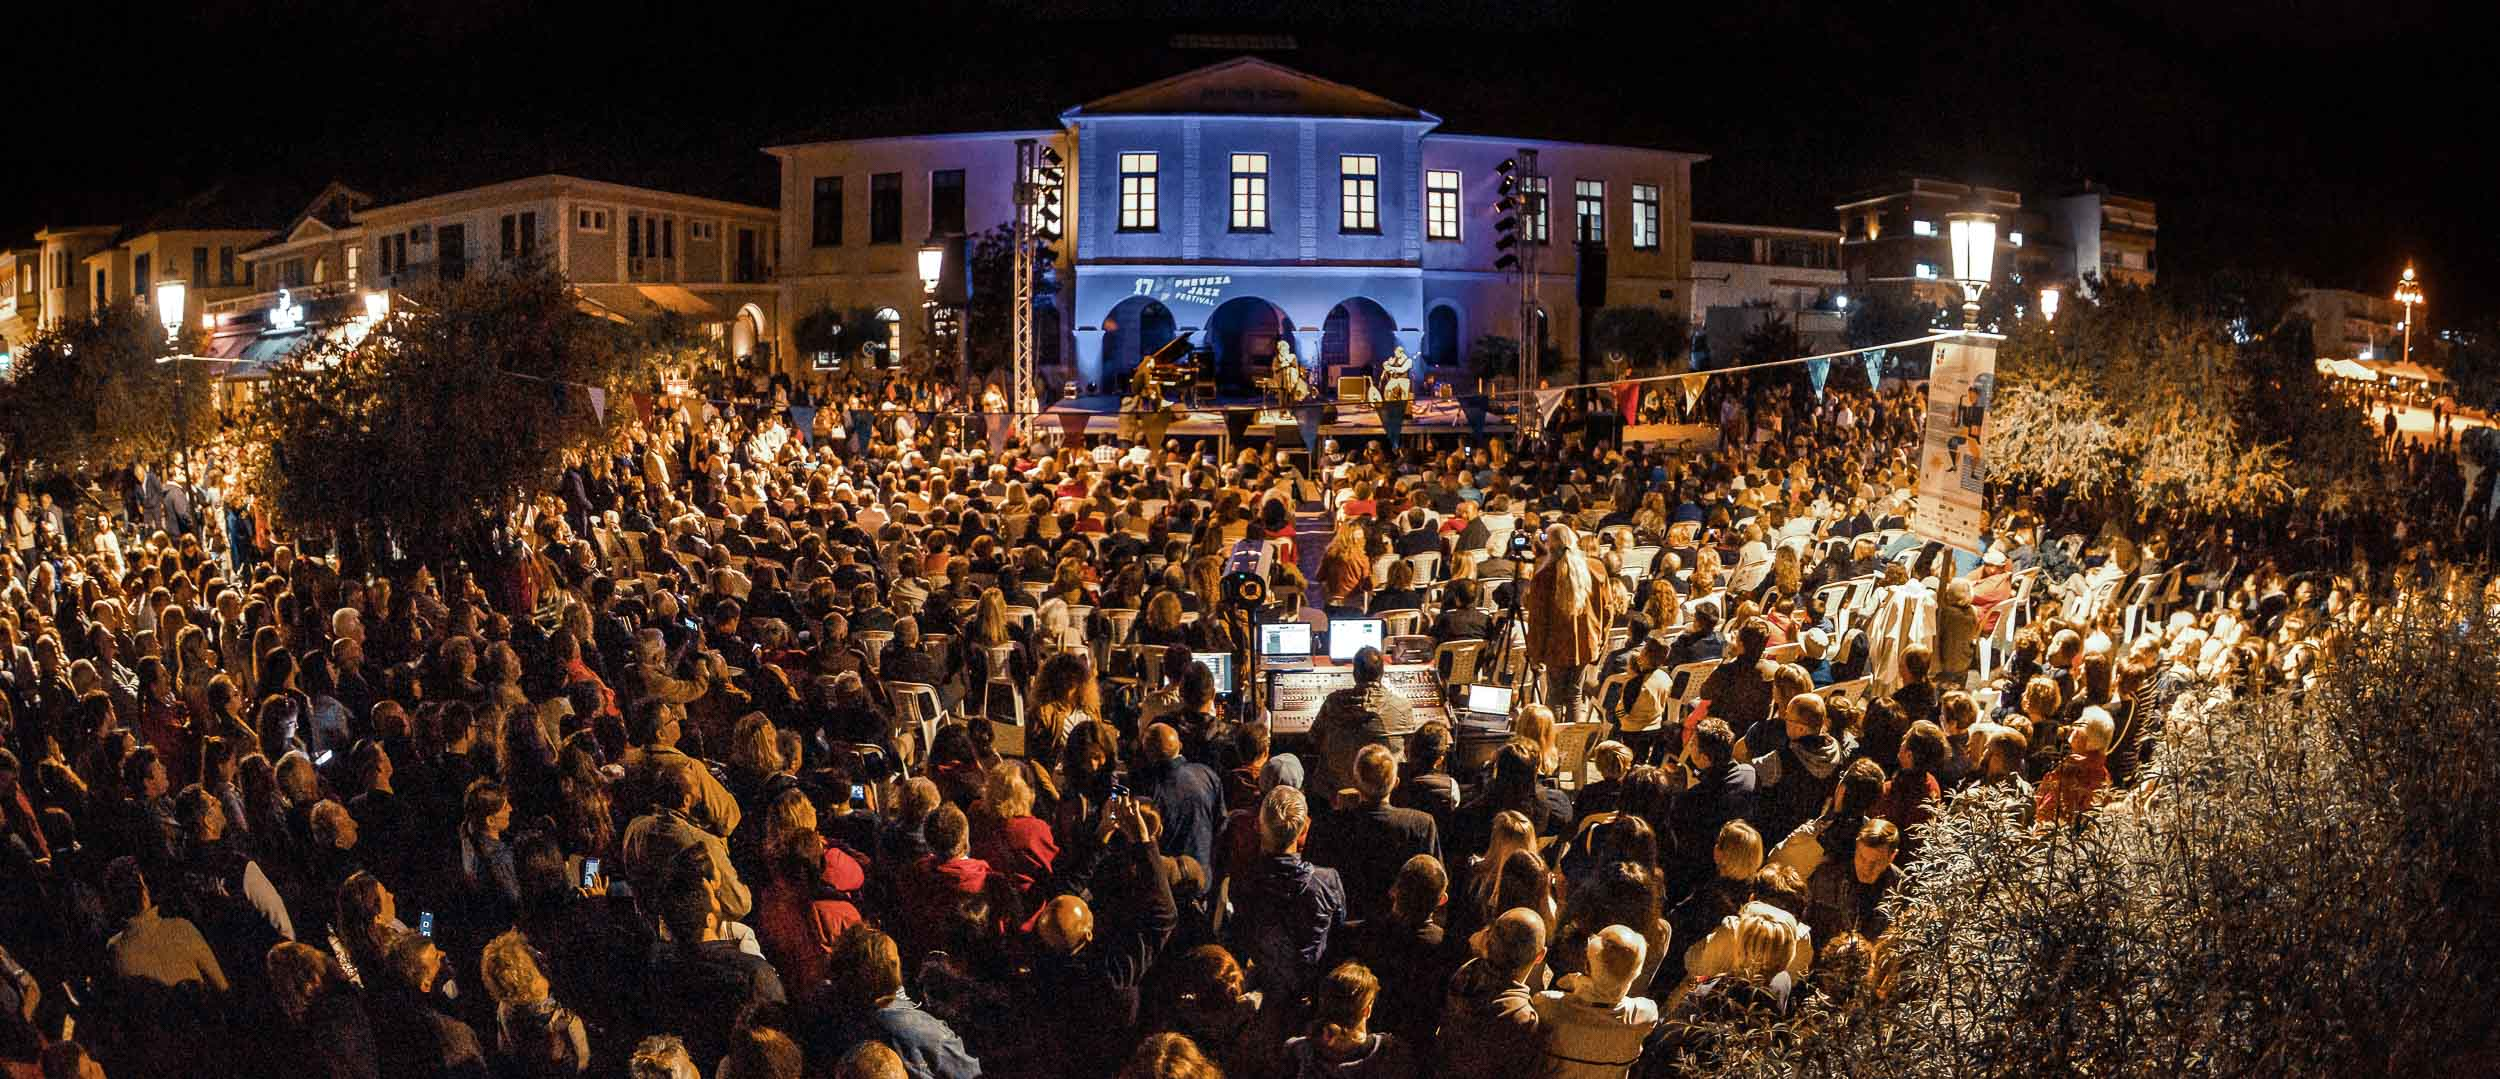 Crowd attending a live event in preveza